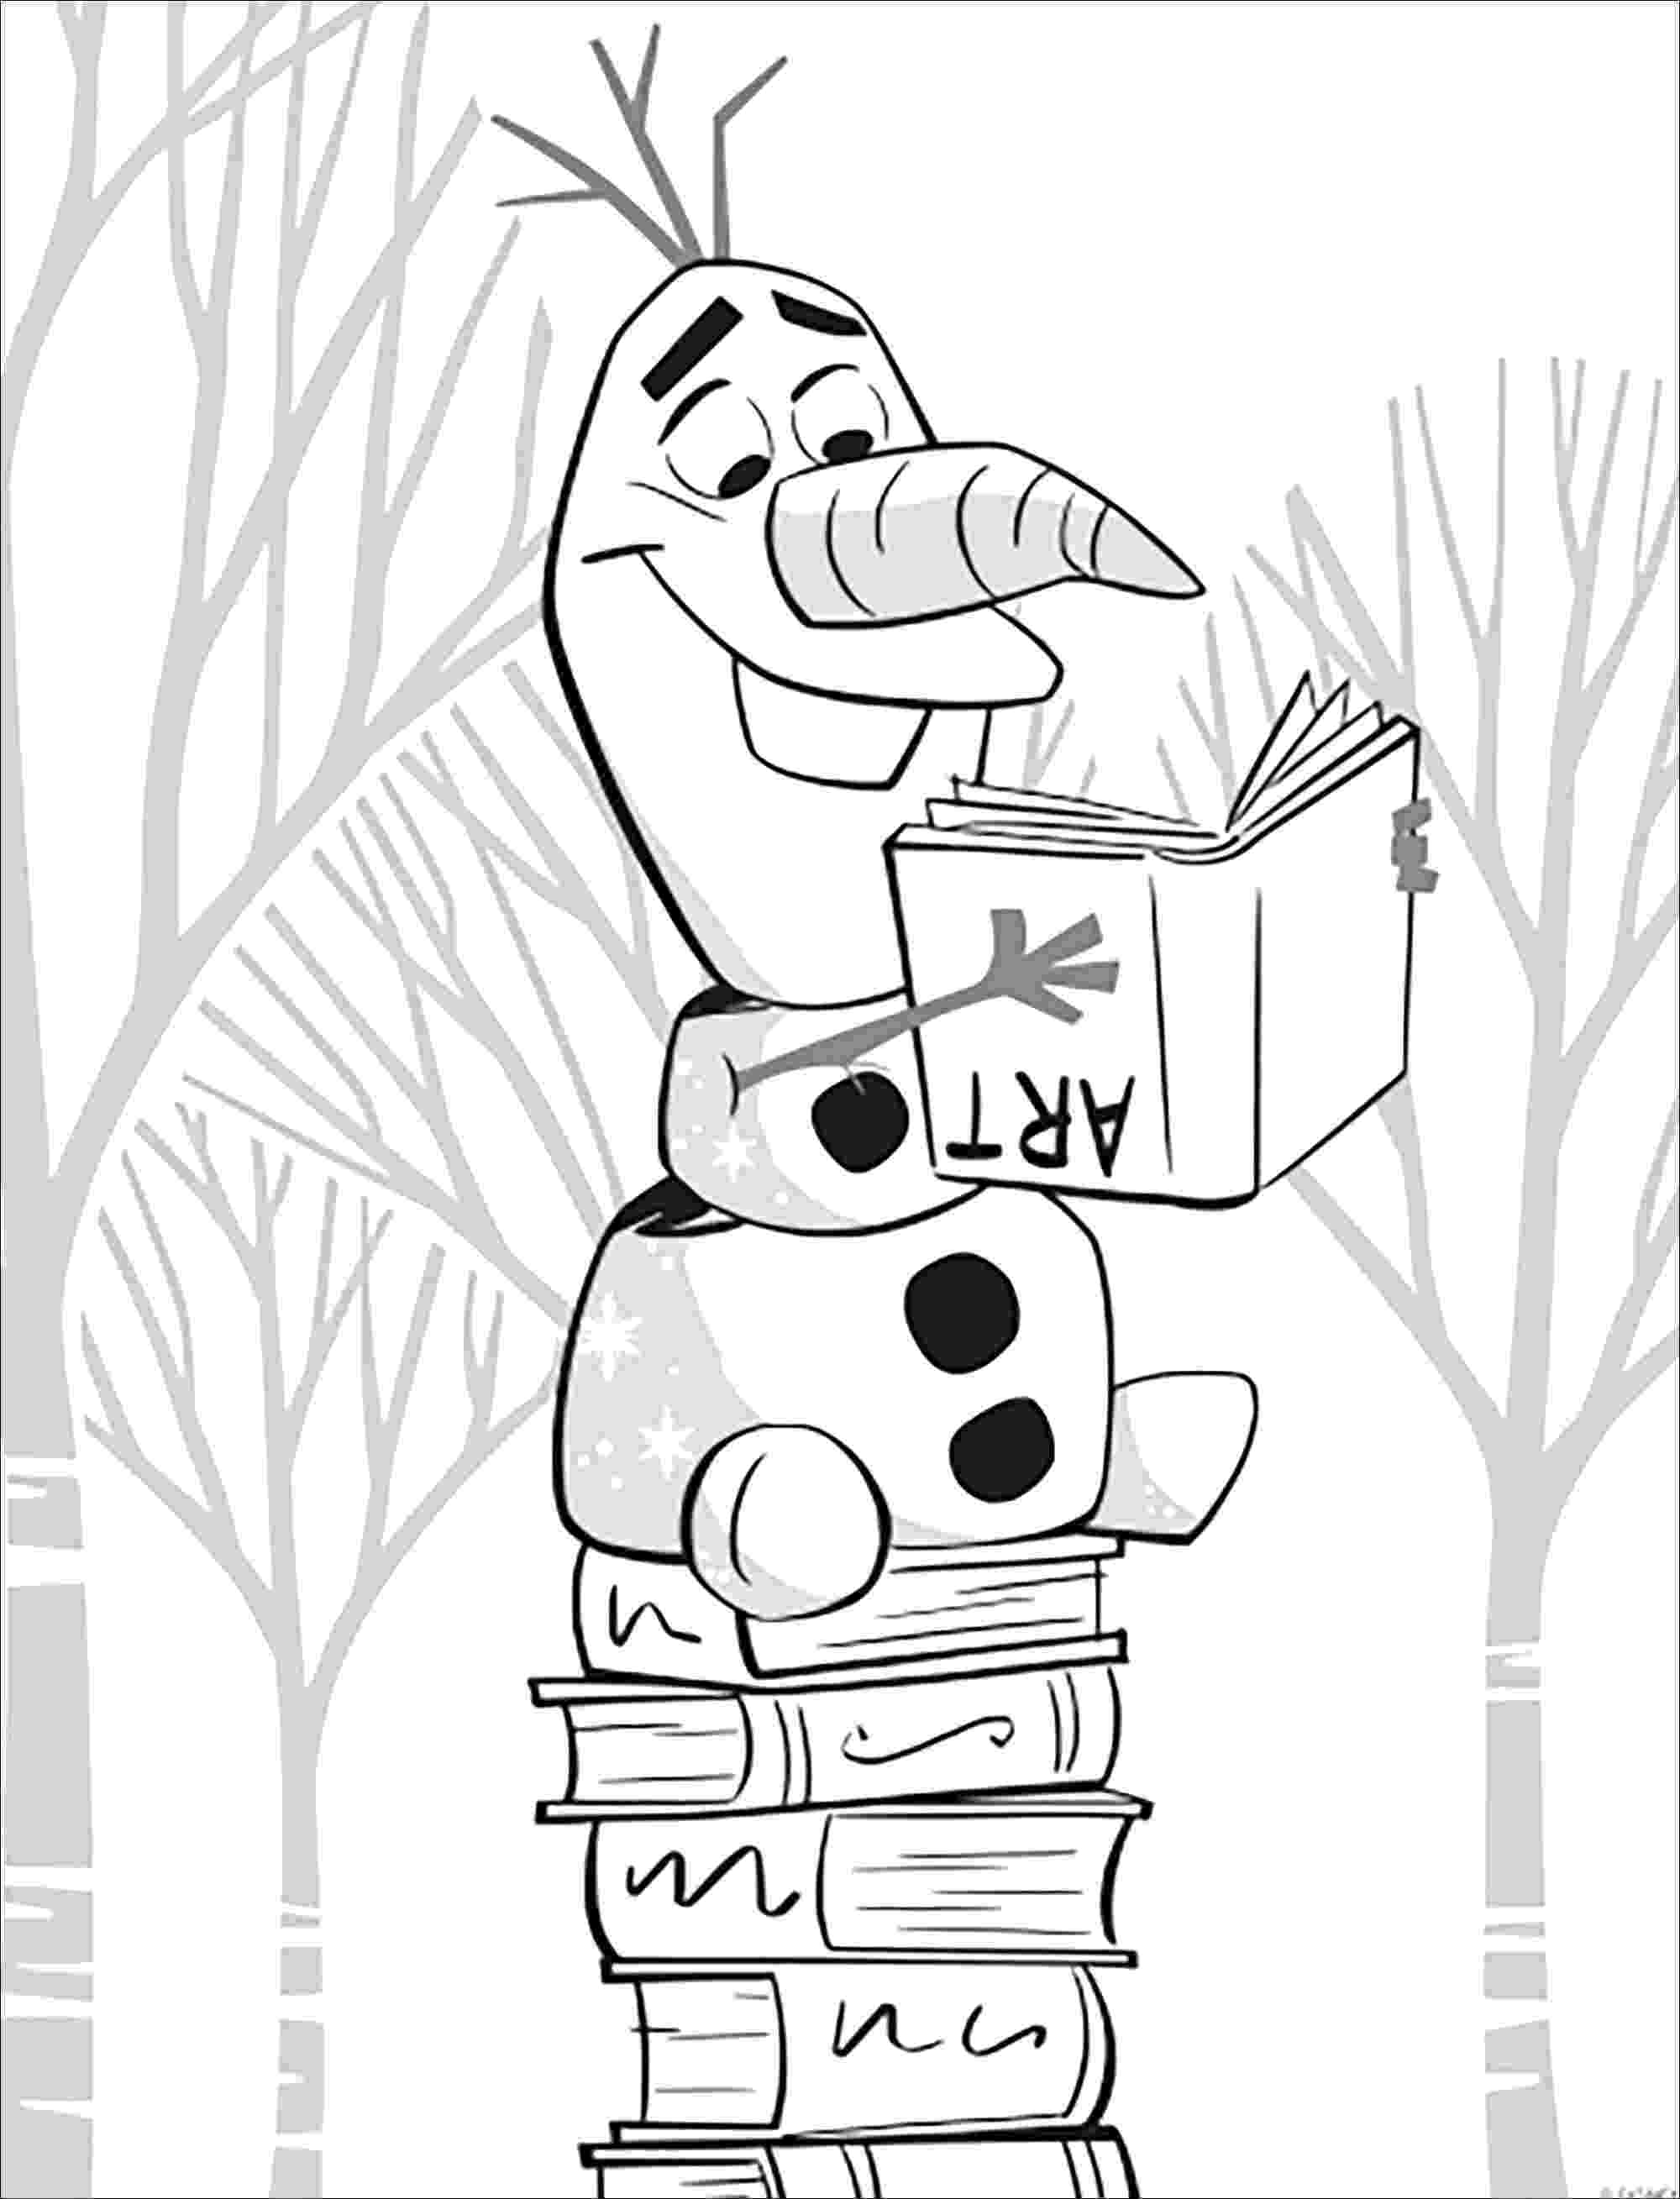 frozen olaf coloring frozen 2 olaf without text frozen 2 kids coloring pages olaf frozen coloring